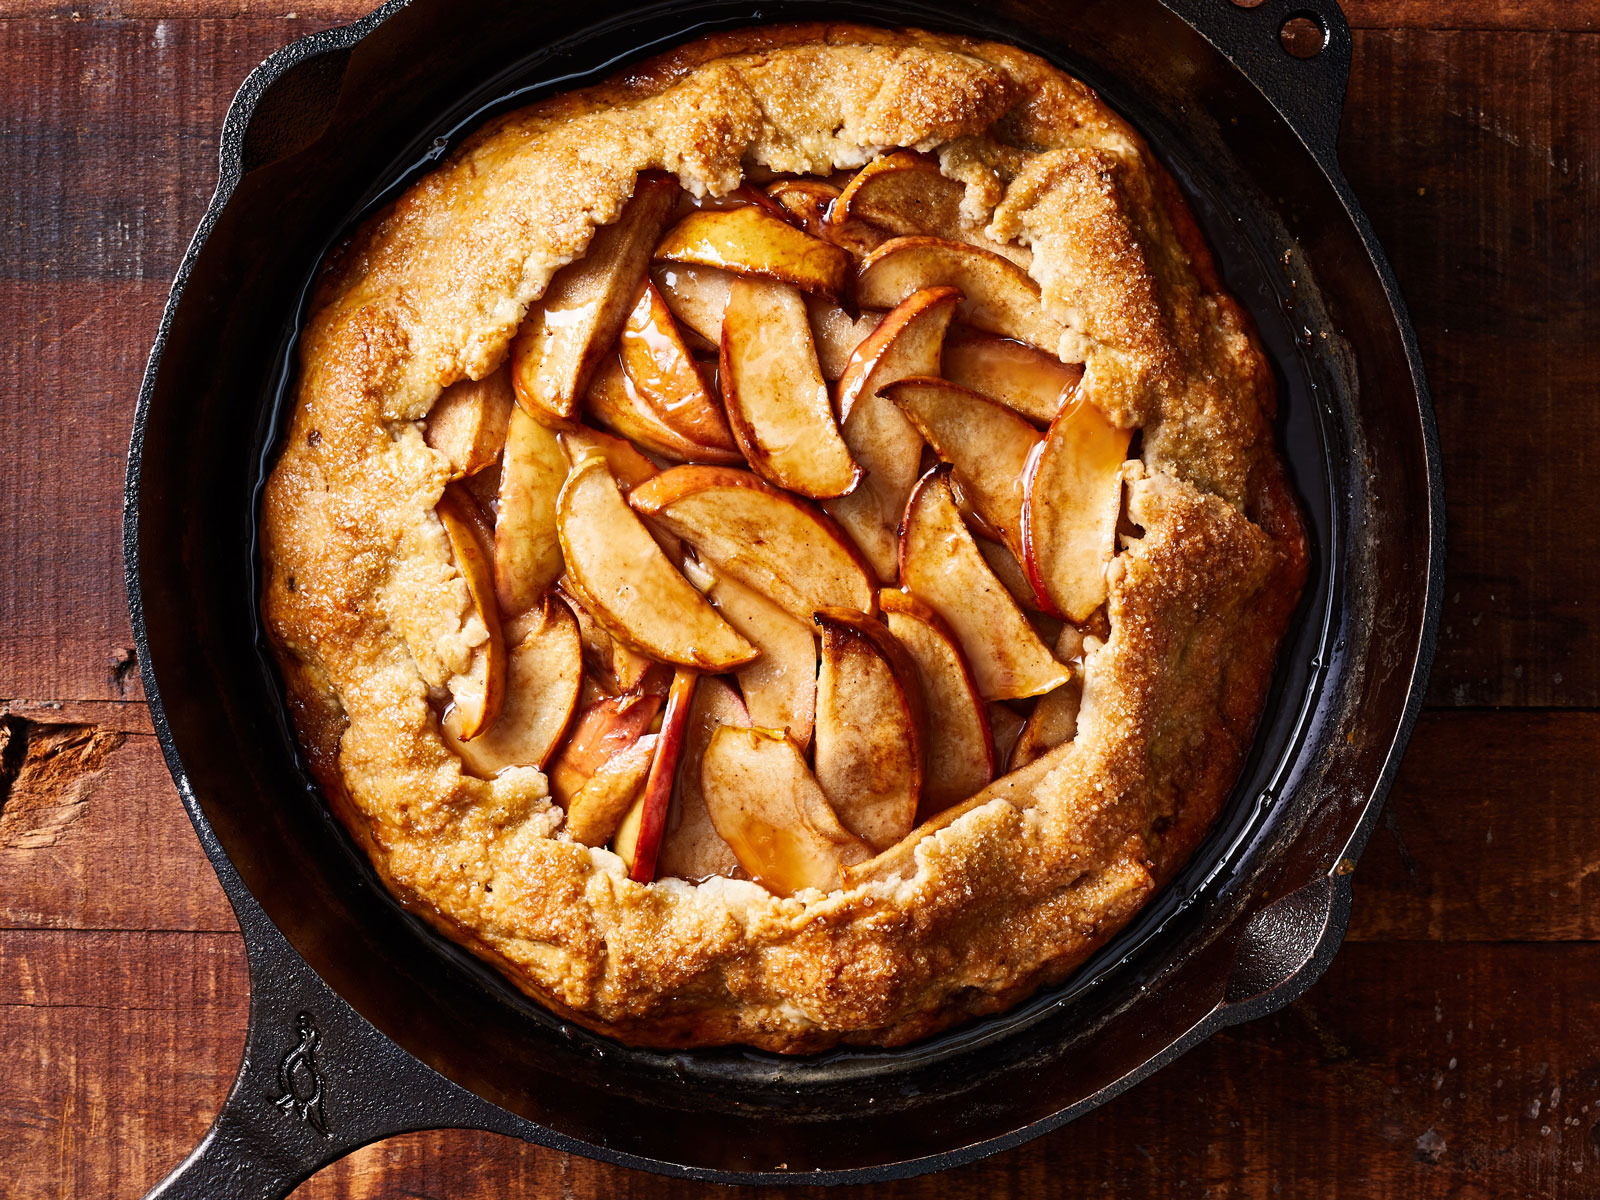 Grill Baked Apple Galette Recipe